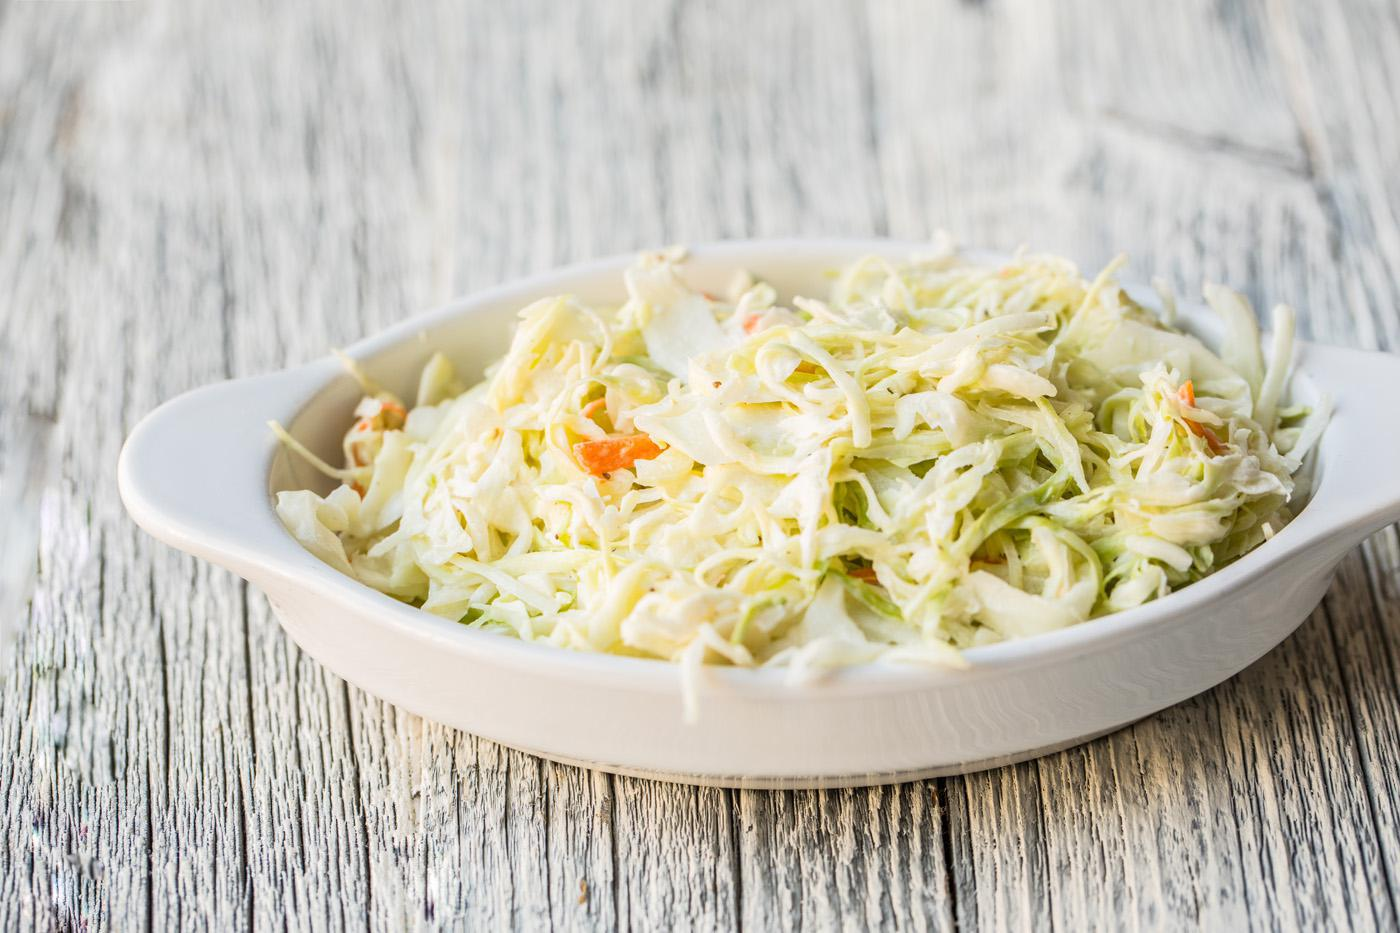 Country Club Coleslaw